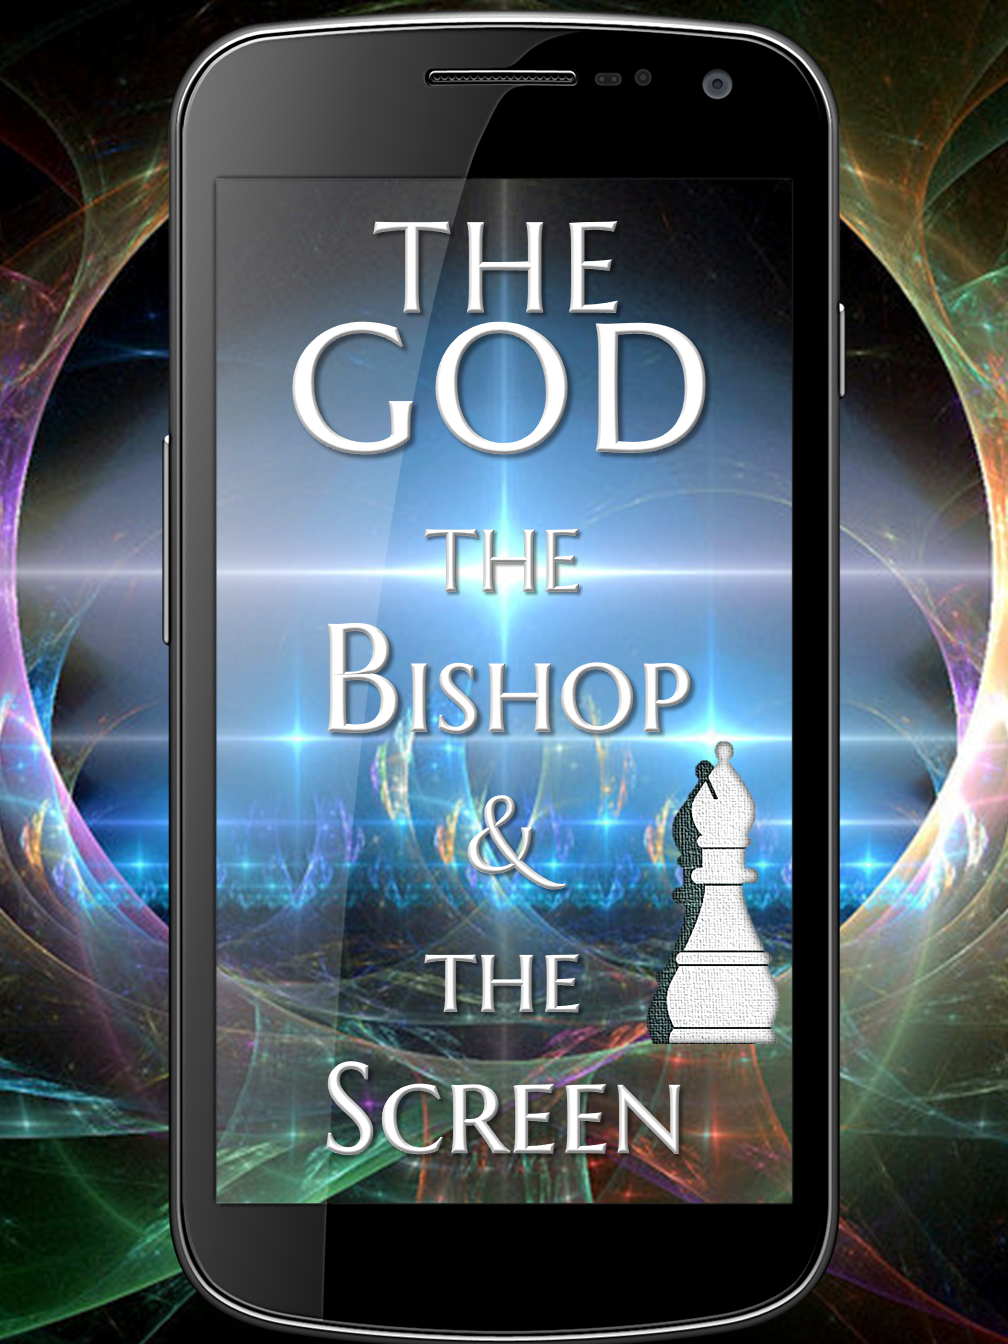 THE GOD, The Bishop & The Screen